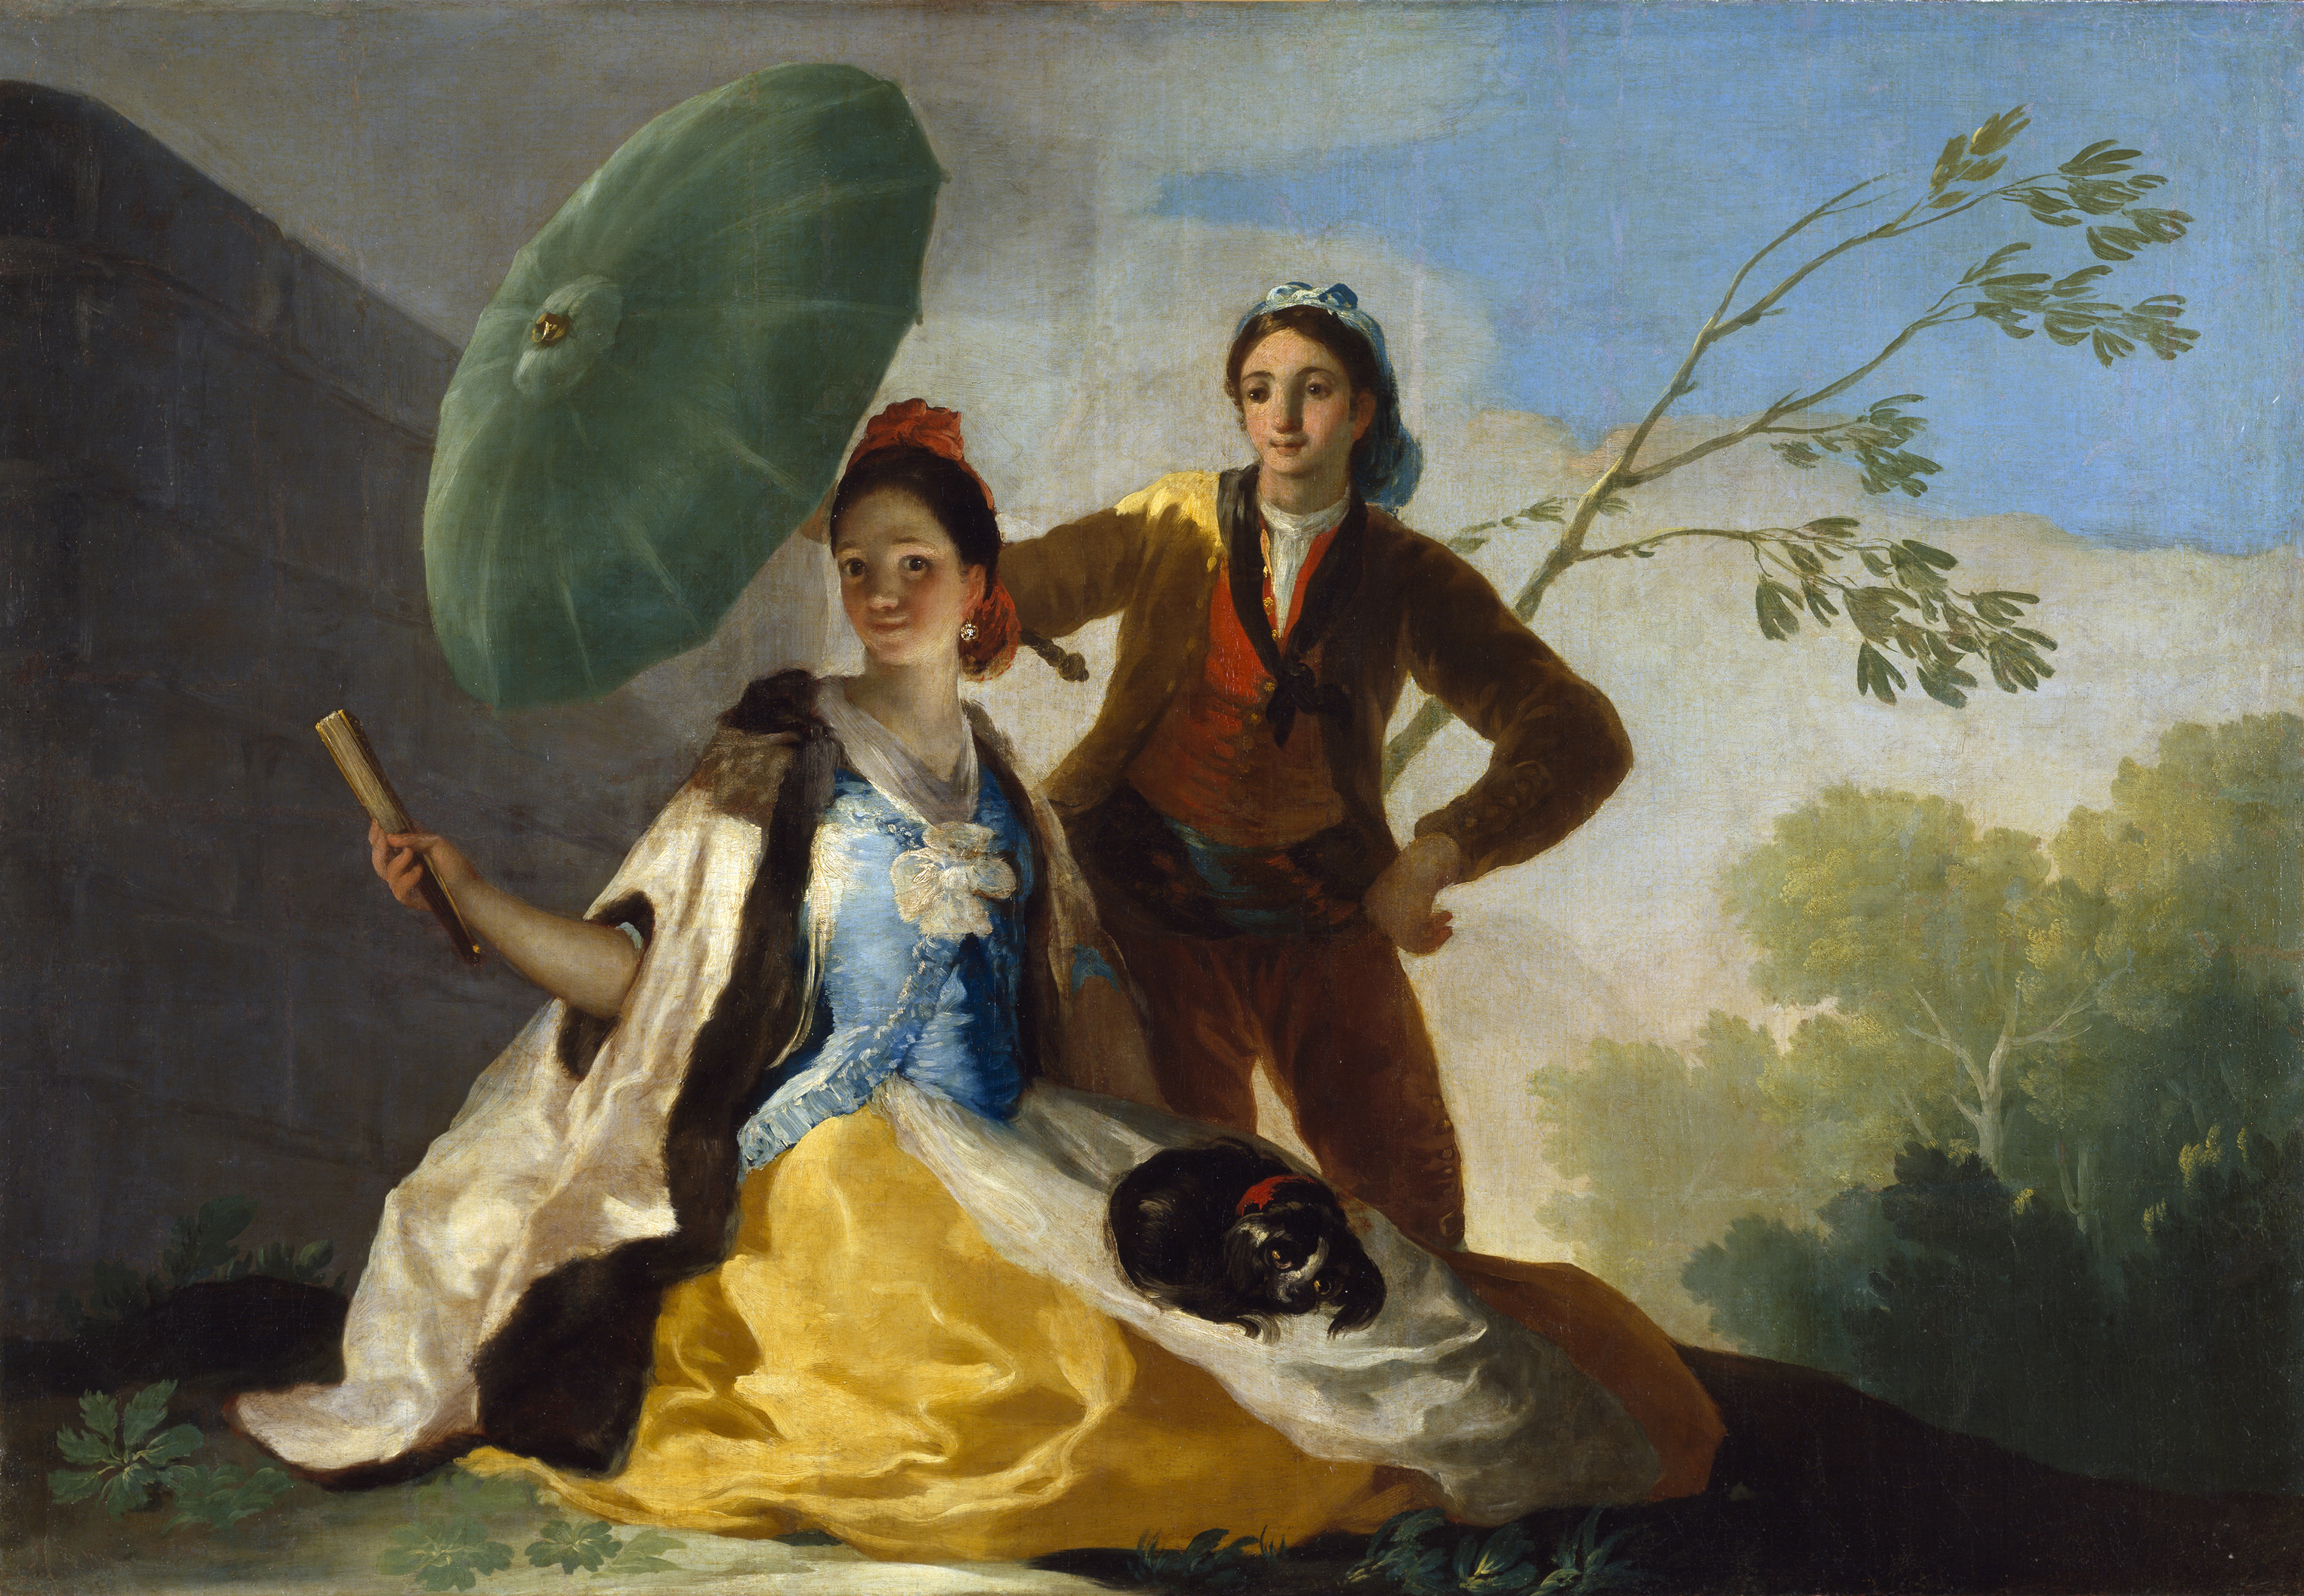 francisco goyas the second of may 1808 depicts